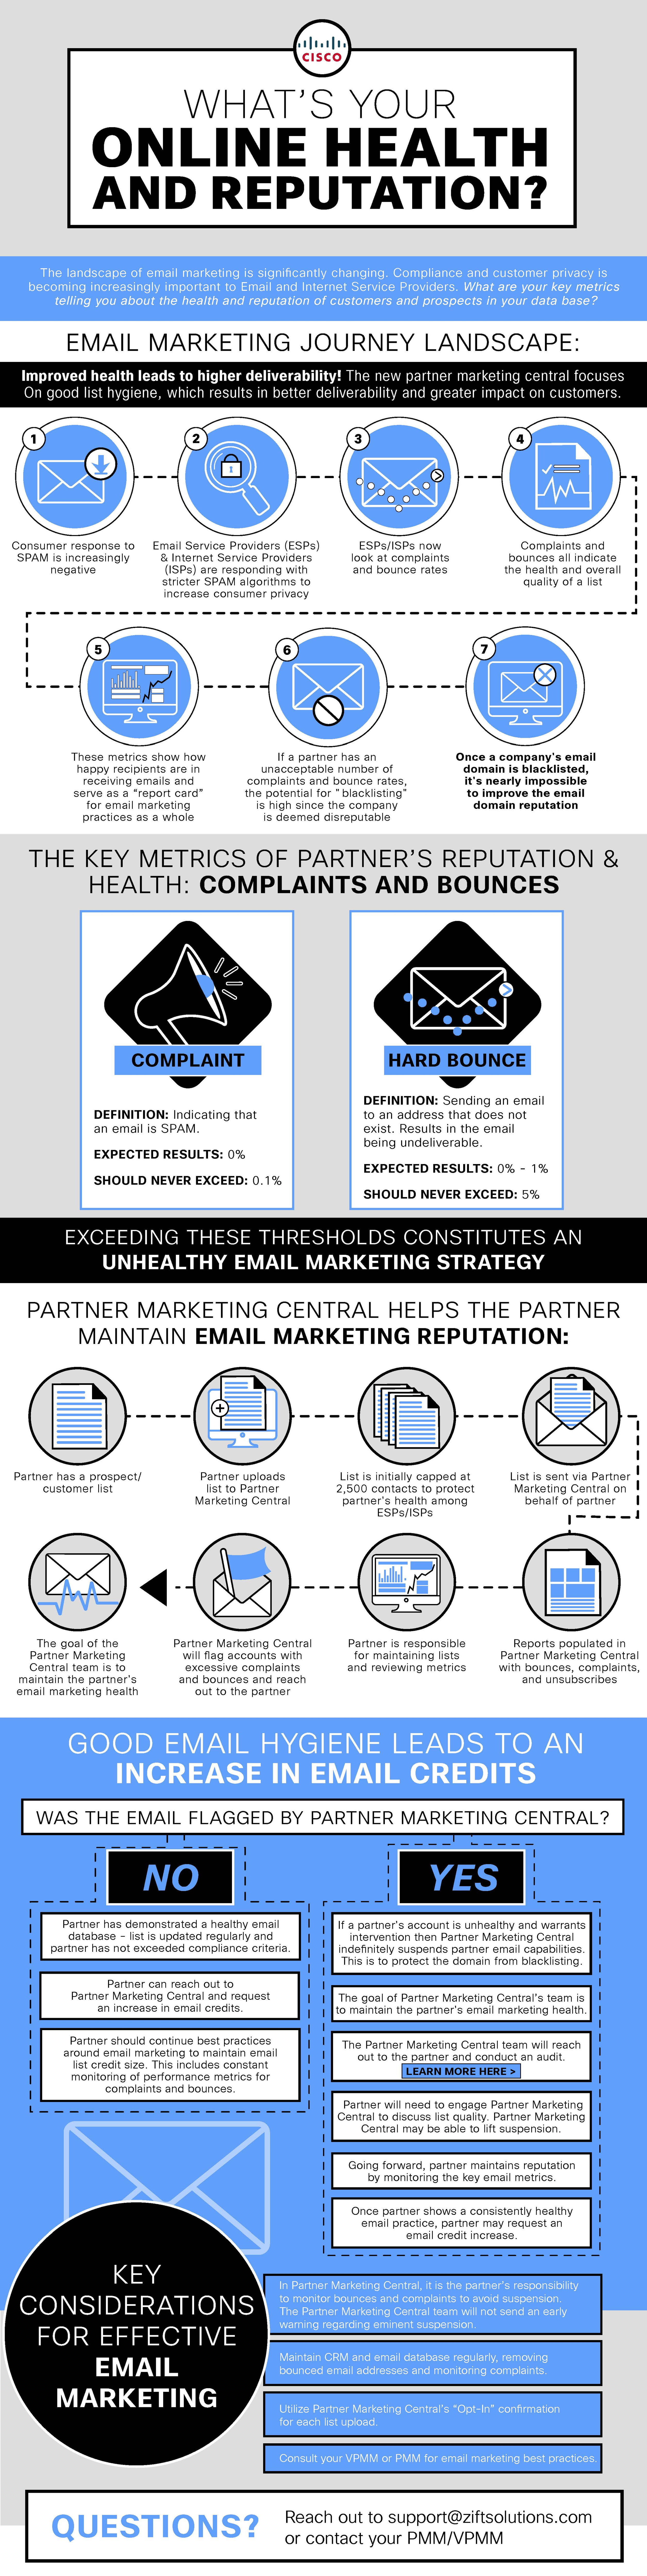 Channel Partner Email Marketing Journey [Infographic]